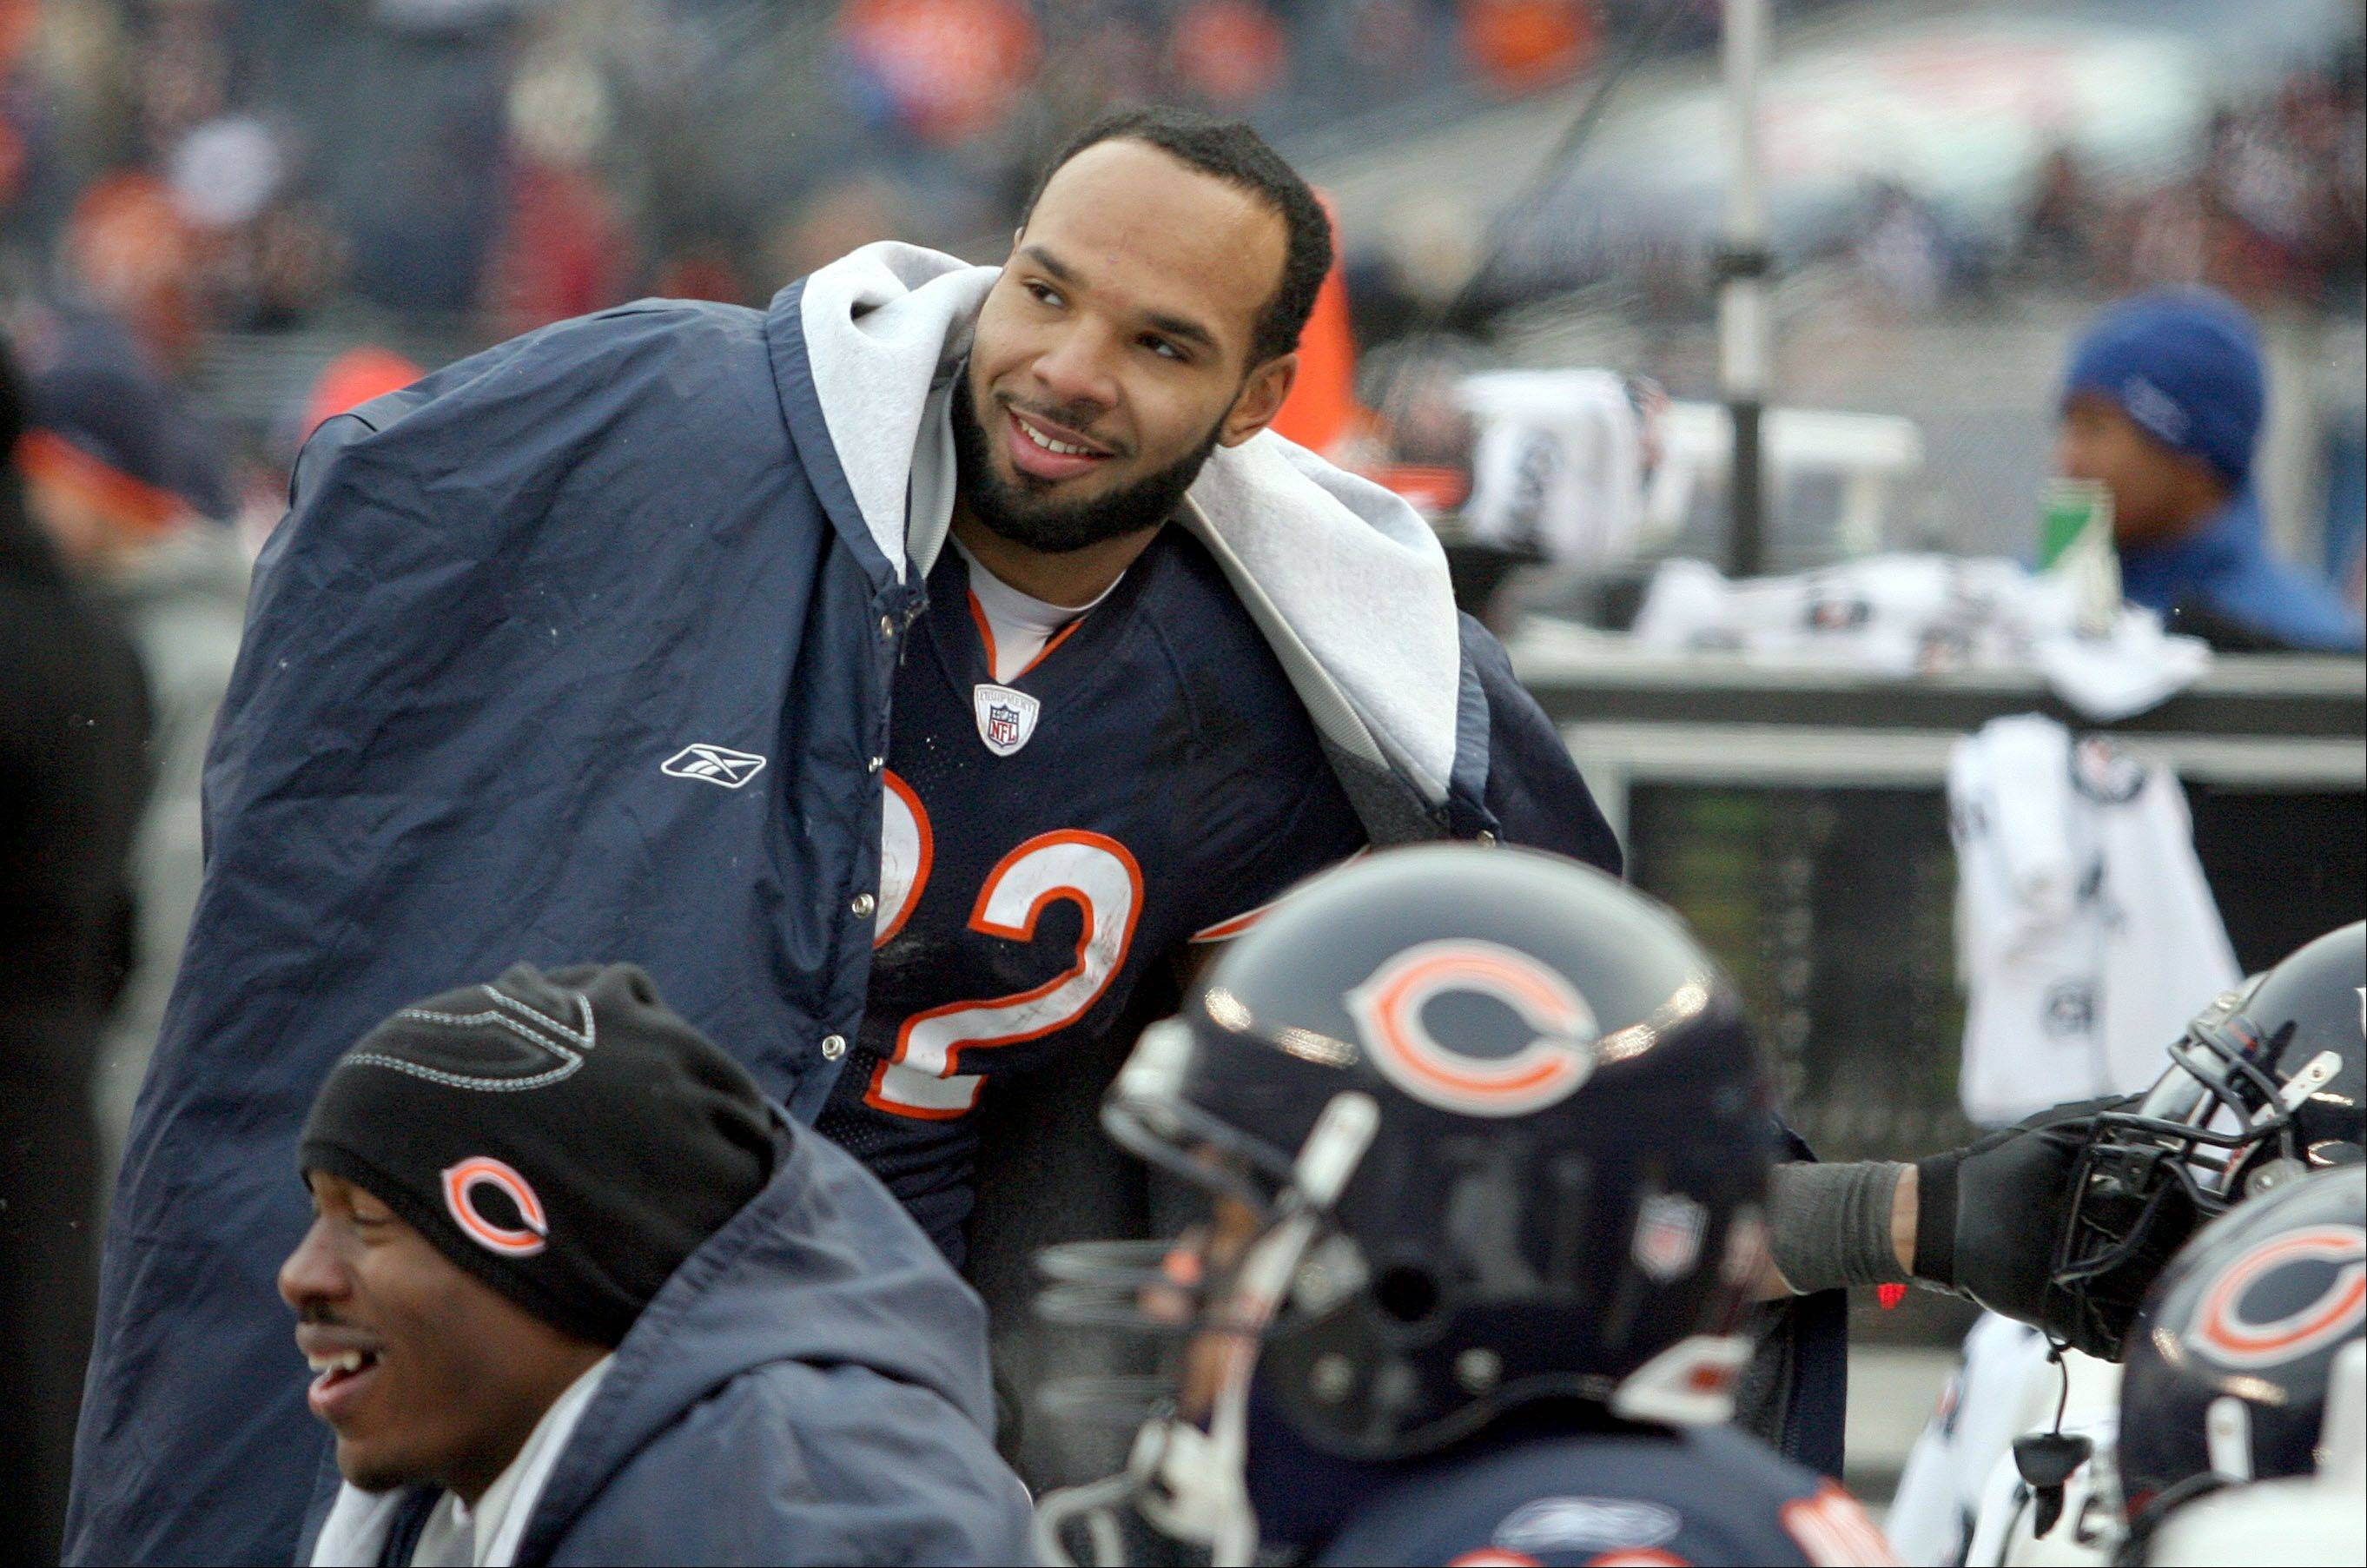 Stalled contract talks frustrate Bears' Forte